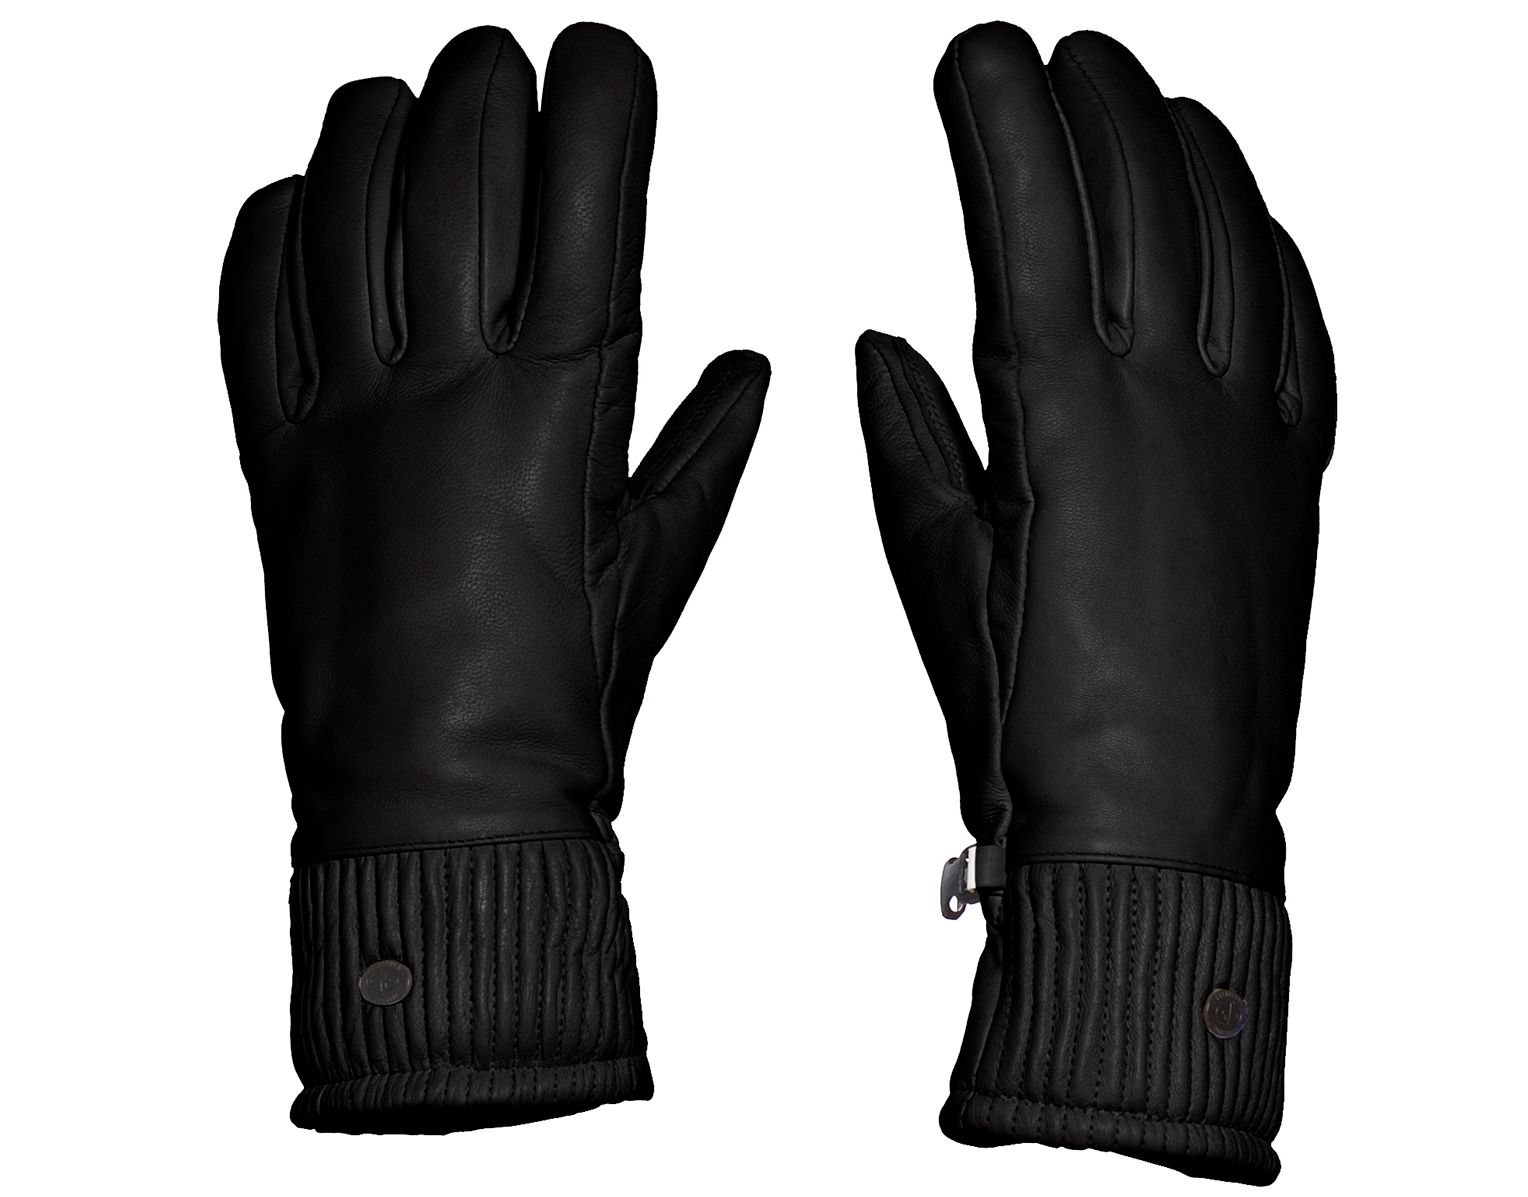 Goldbergh Leather Ski Gloves for women